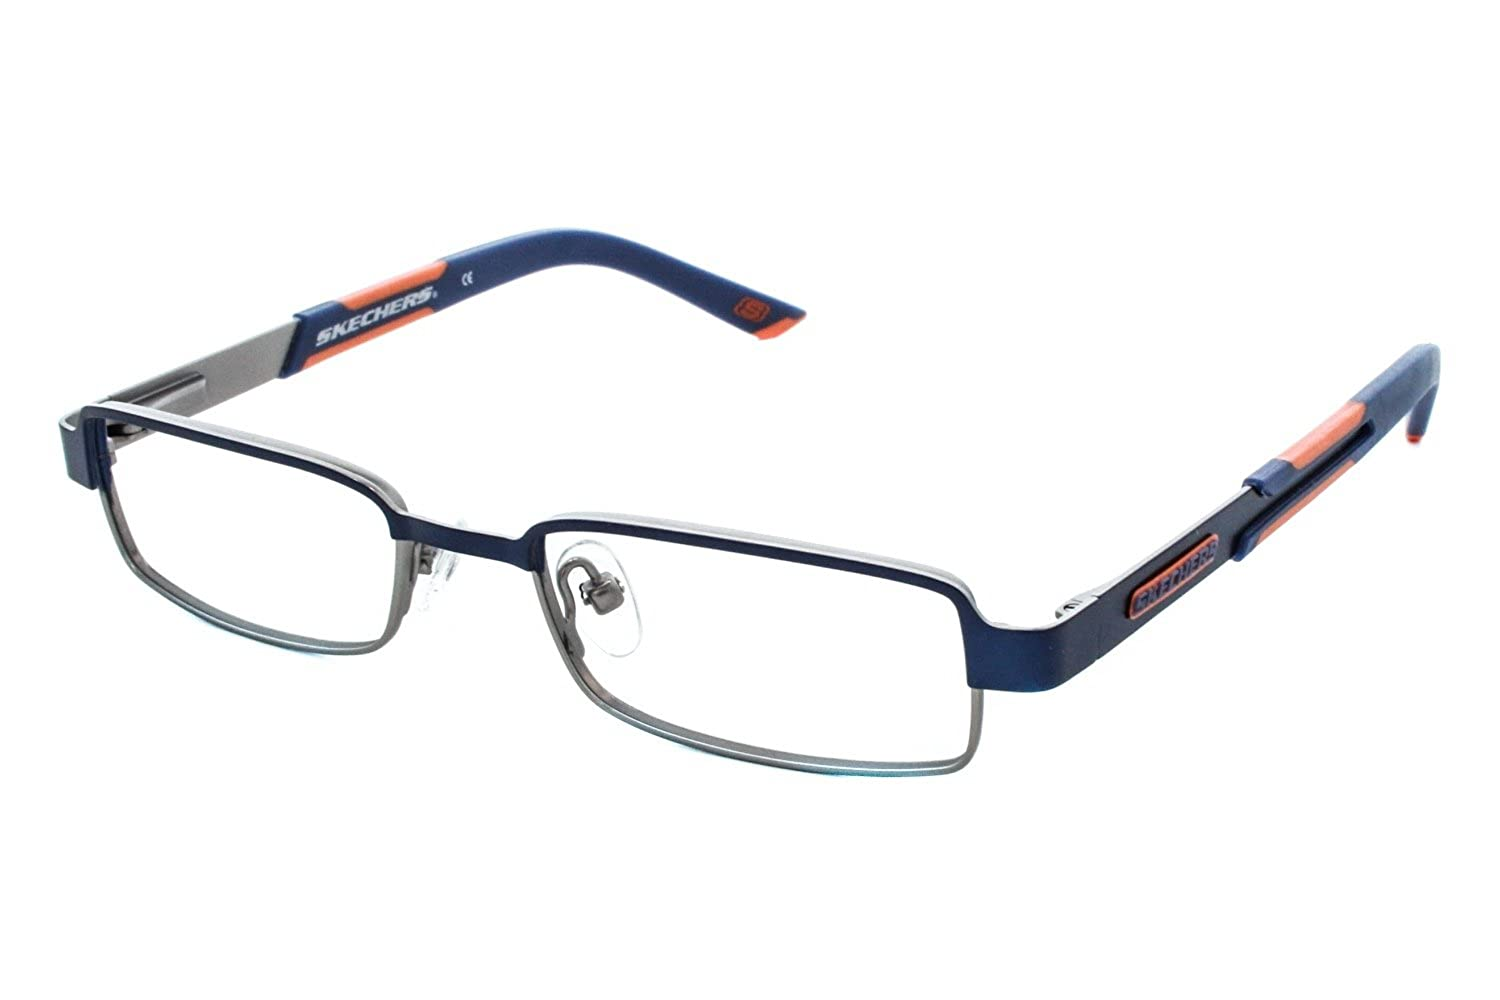 Amazon.com: SKECHERS Eyeglasses SK 1028 B79 Blue Gunmetal 45MM: Clothing